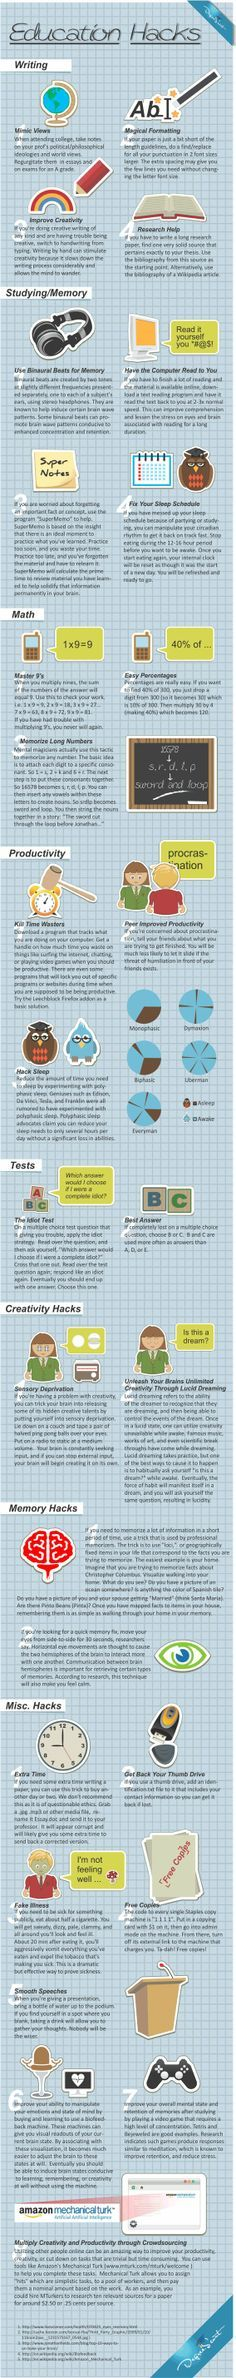 Education hacks to make your life easier - Win Picture | Webfail - Fail Pictures and Fail Videos